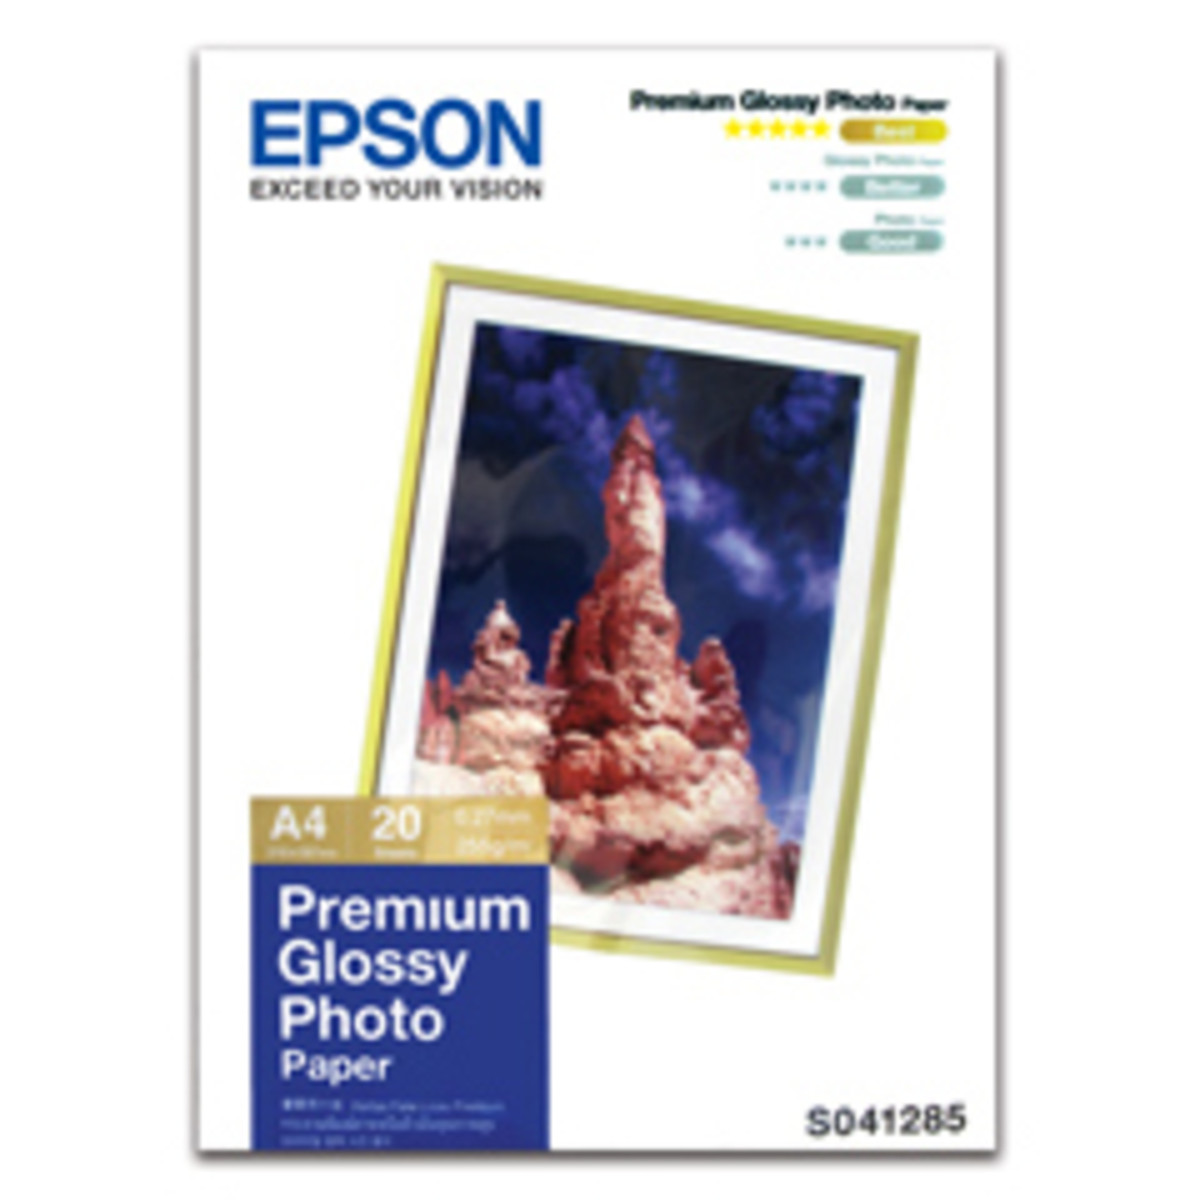 Epson Premium Glossy Photo Paper (A4, 225gsm)